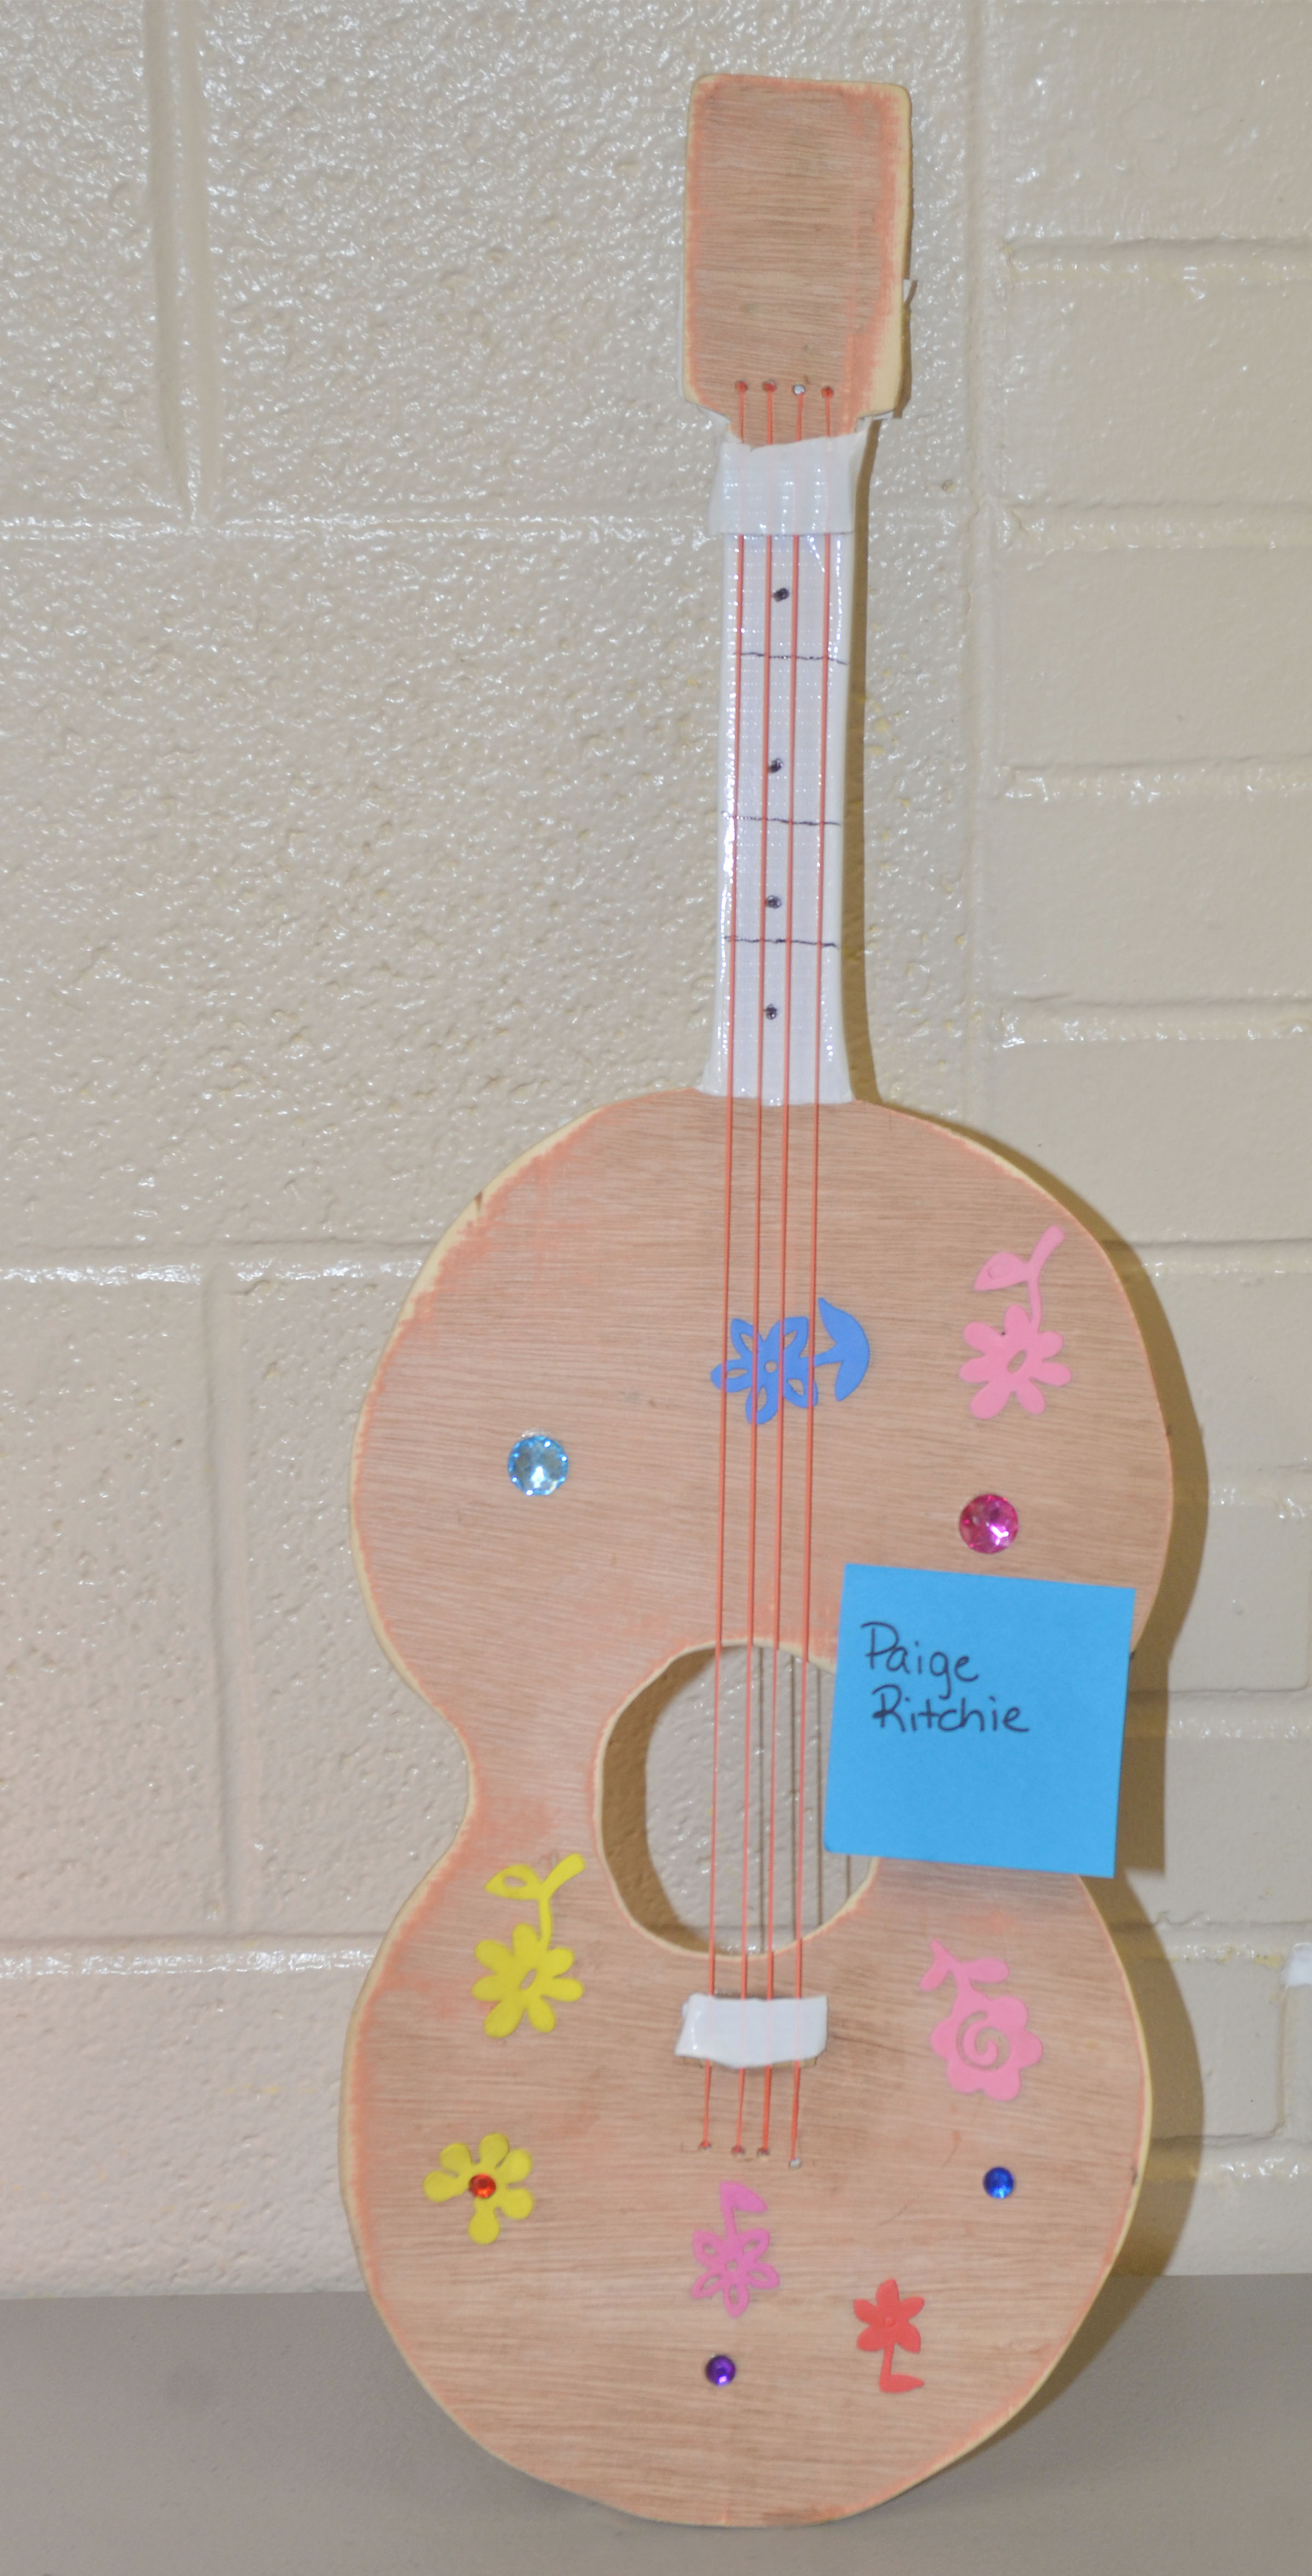 CES third-graders made their own musical instruments as part of the school's Music Week celebration.